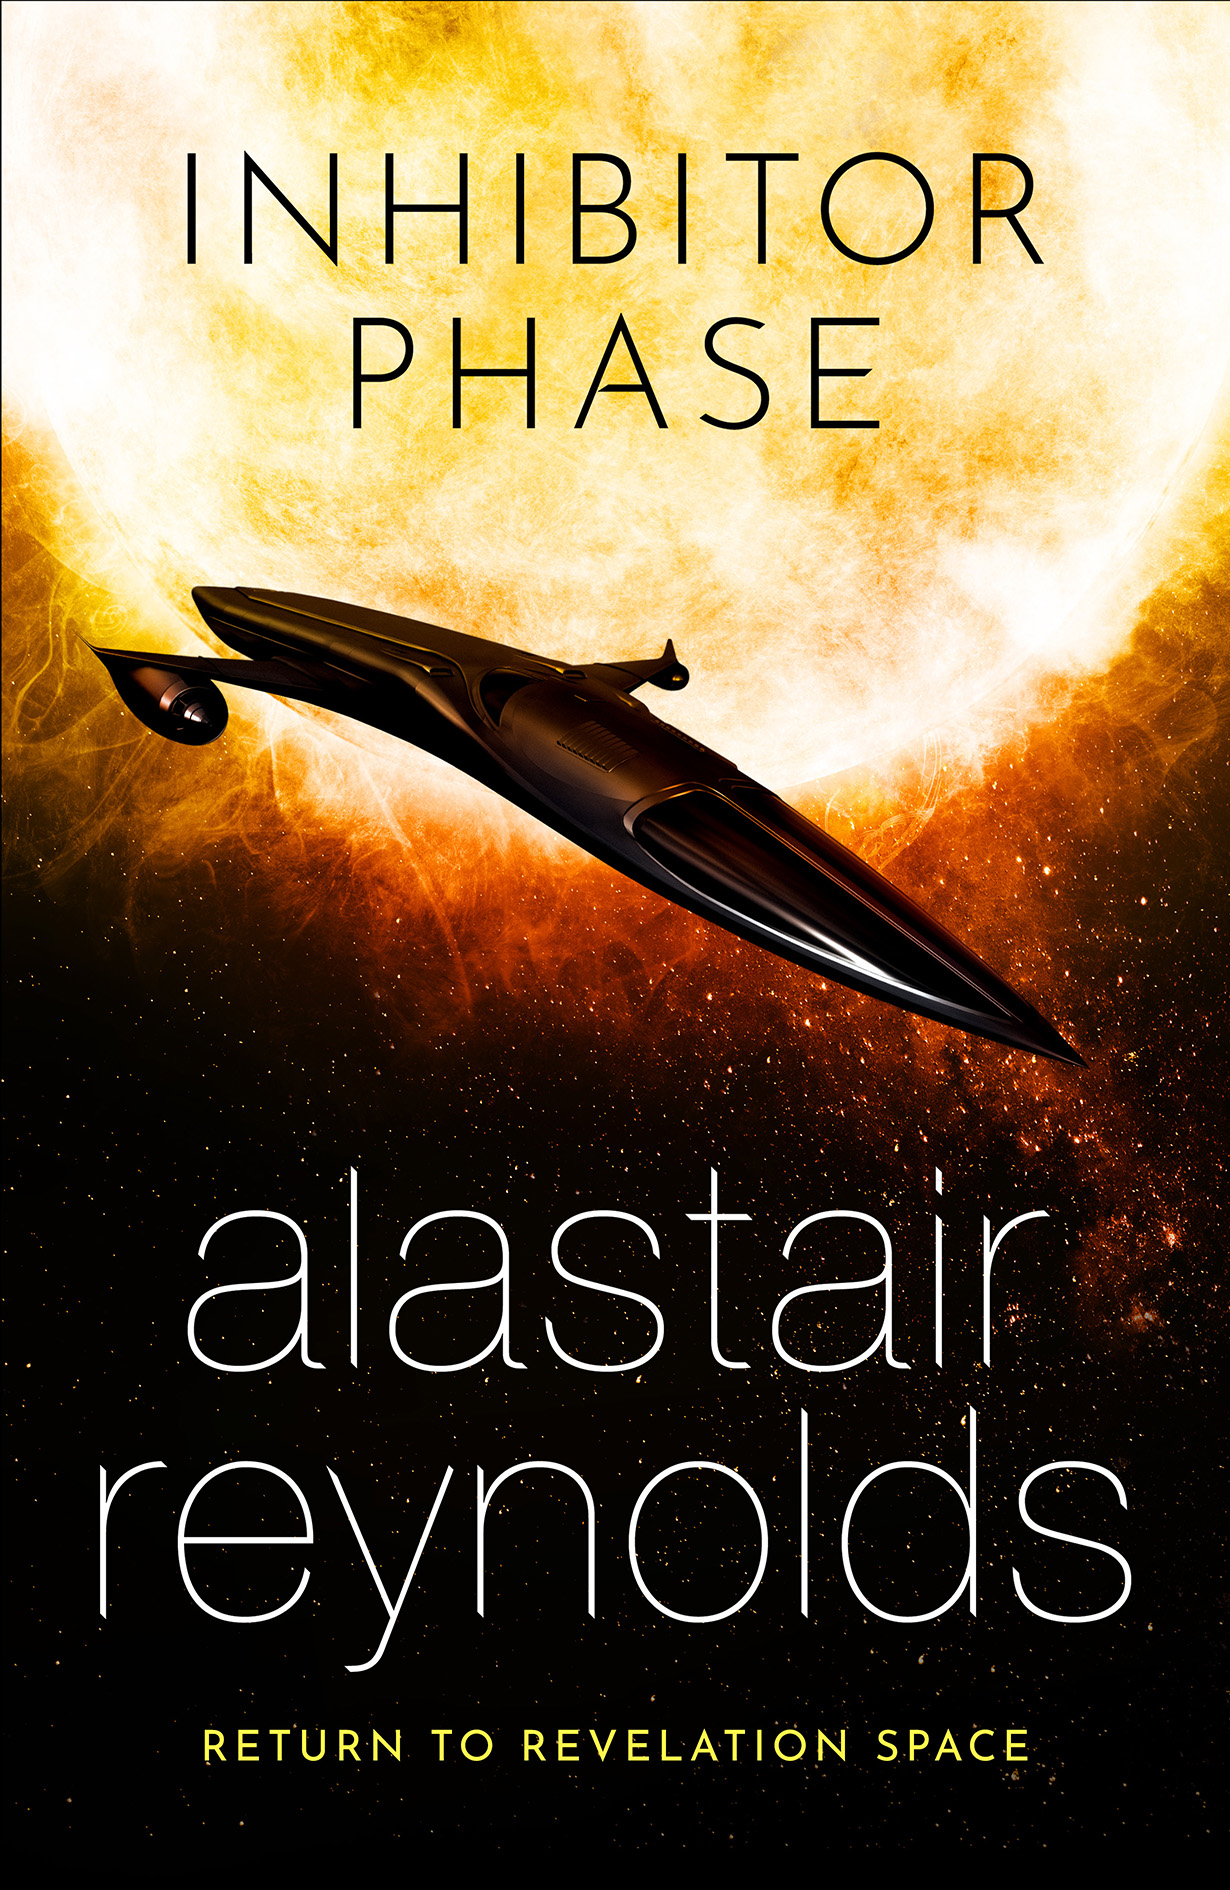 Cover Reveal, Inhibitor Phase